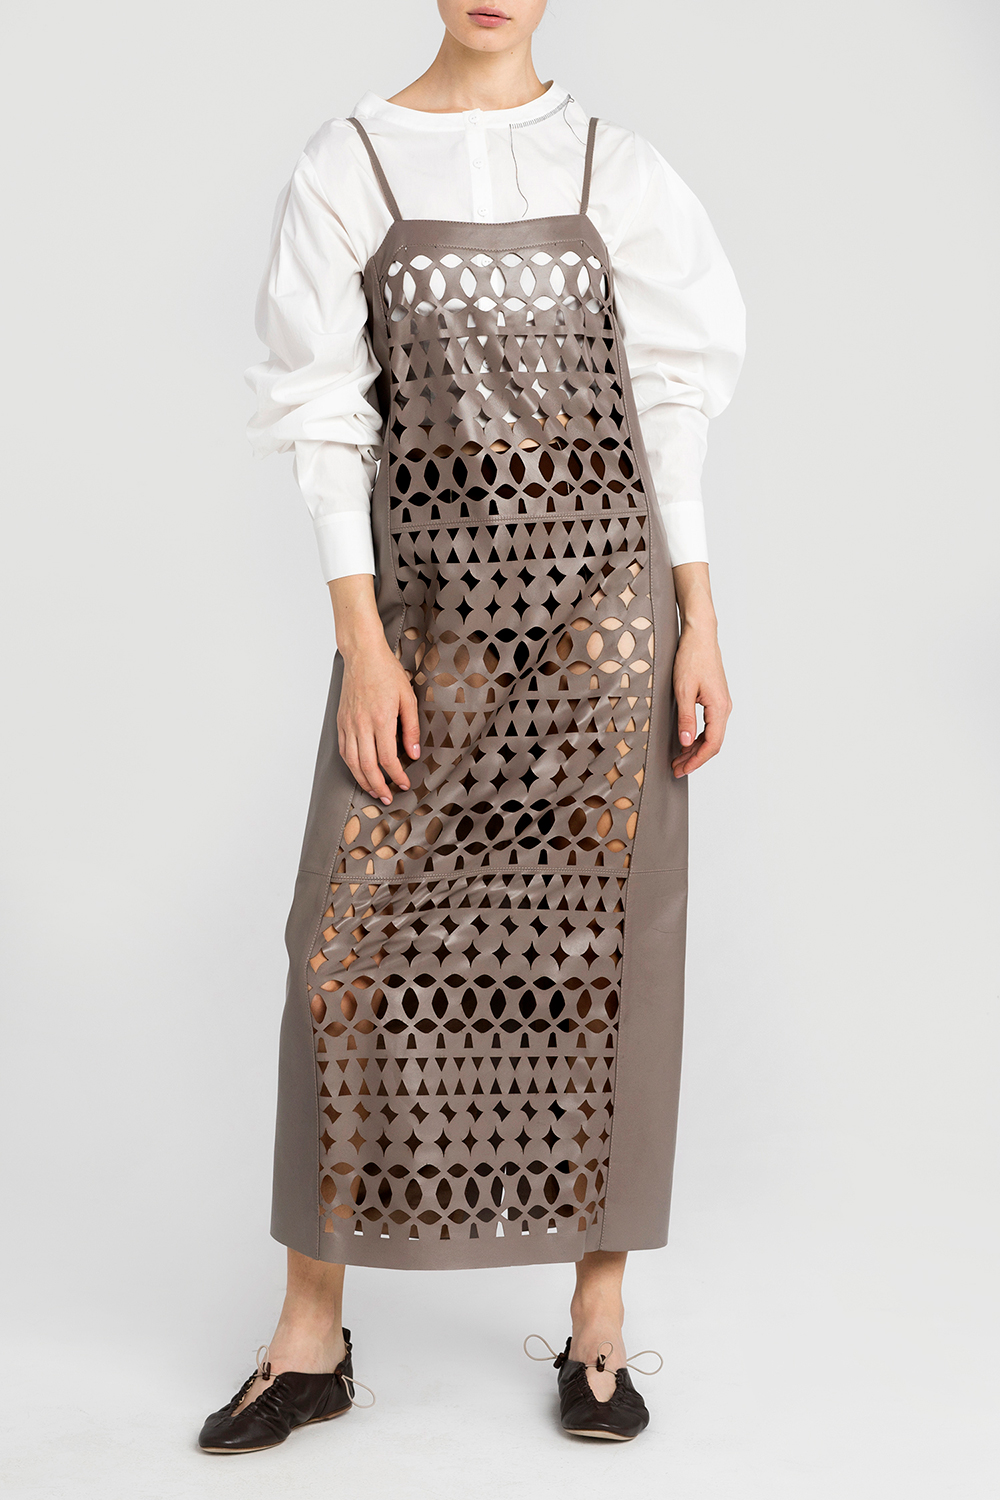 Leather dress with ornamental cutouts